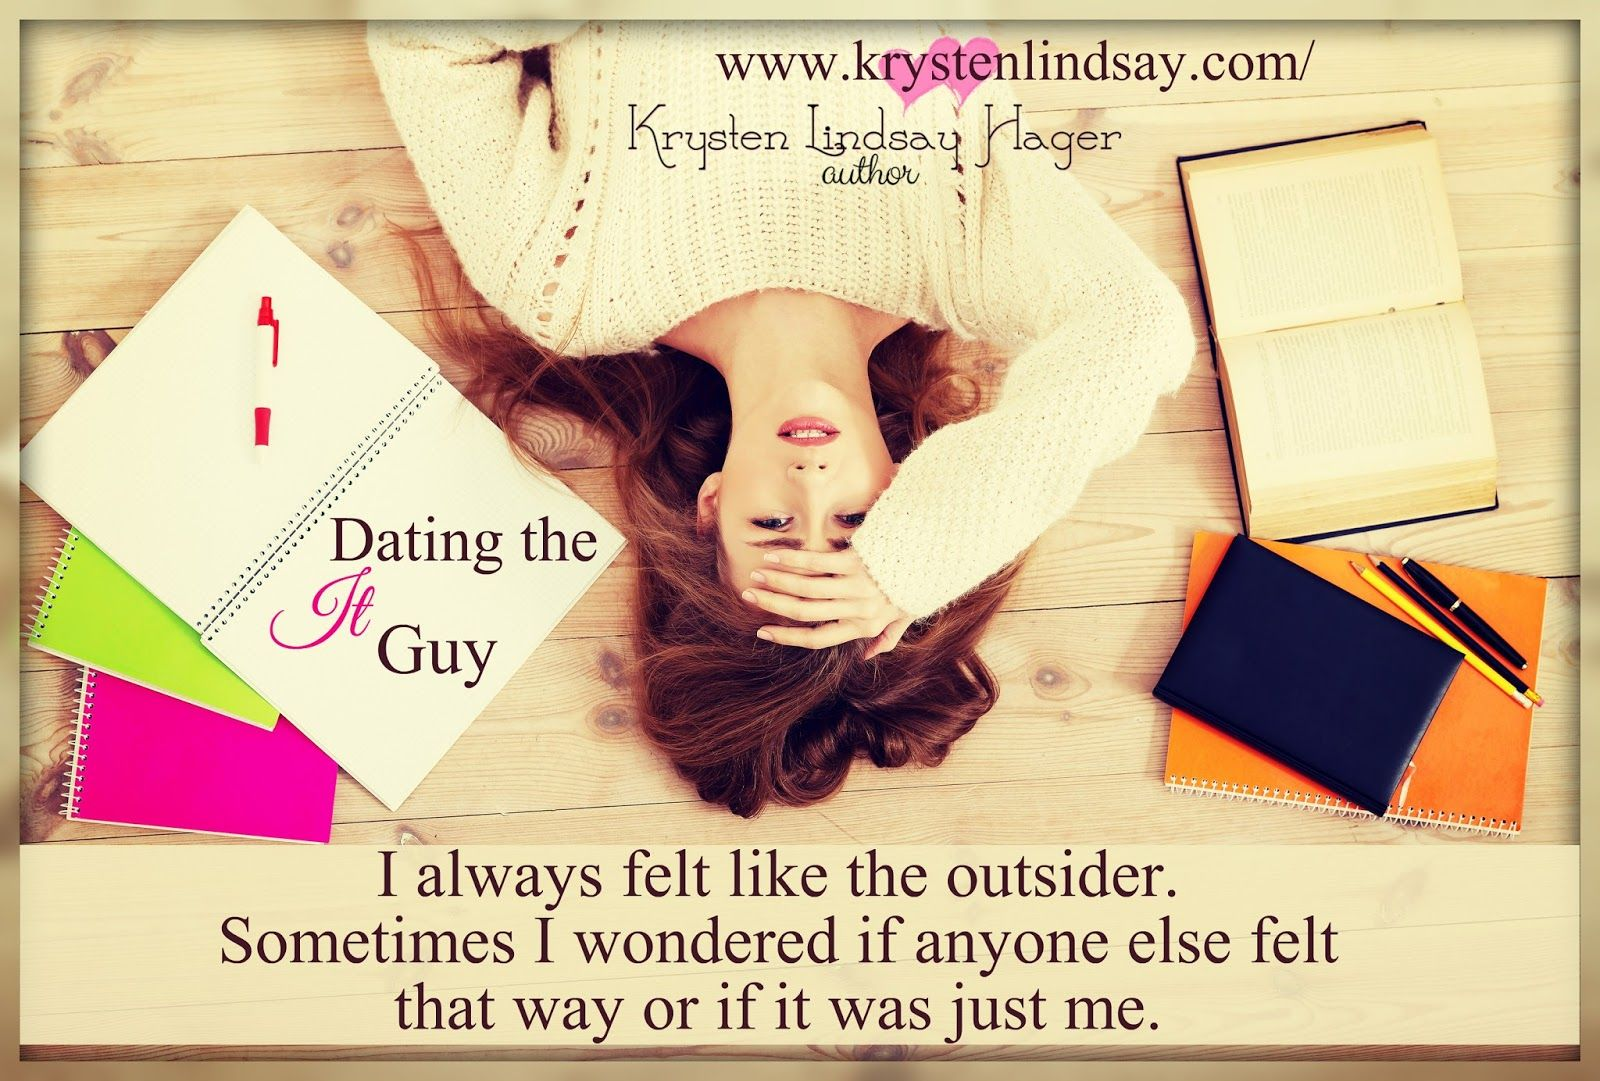 Dating the It Guy by Krysten Lindsay Hager YA contemporary romance Published by Clean Reads Blurb: Emme is a sophomore in high school who starts dating, Brendon Agretti, the popular senior who happ…